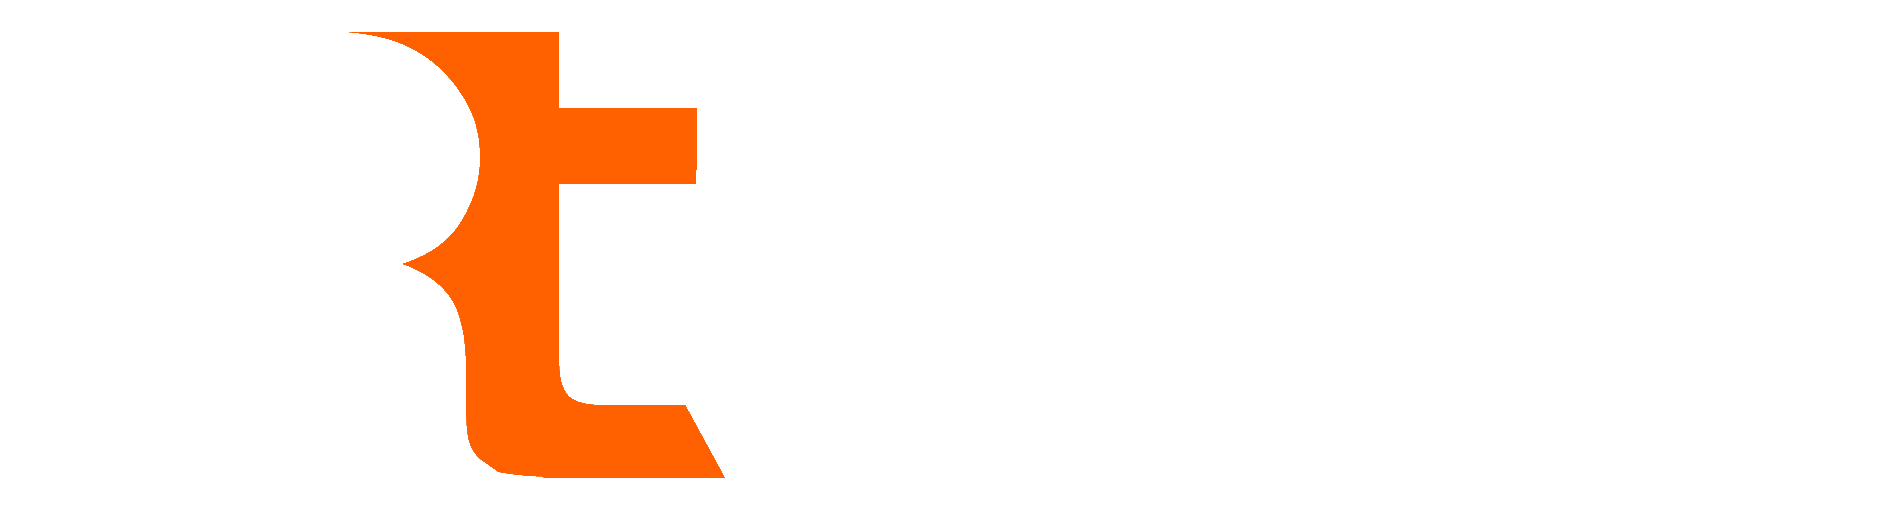 rt-logo-white-and-orange